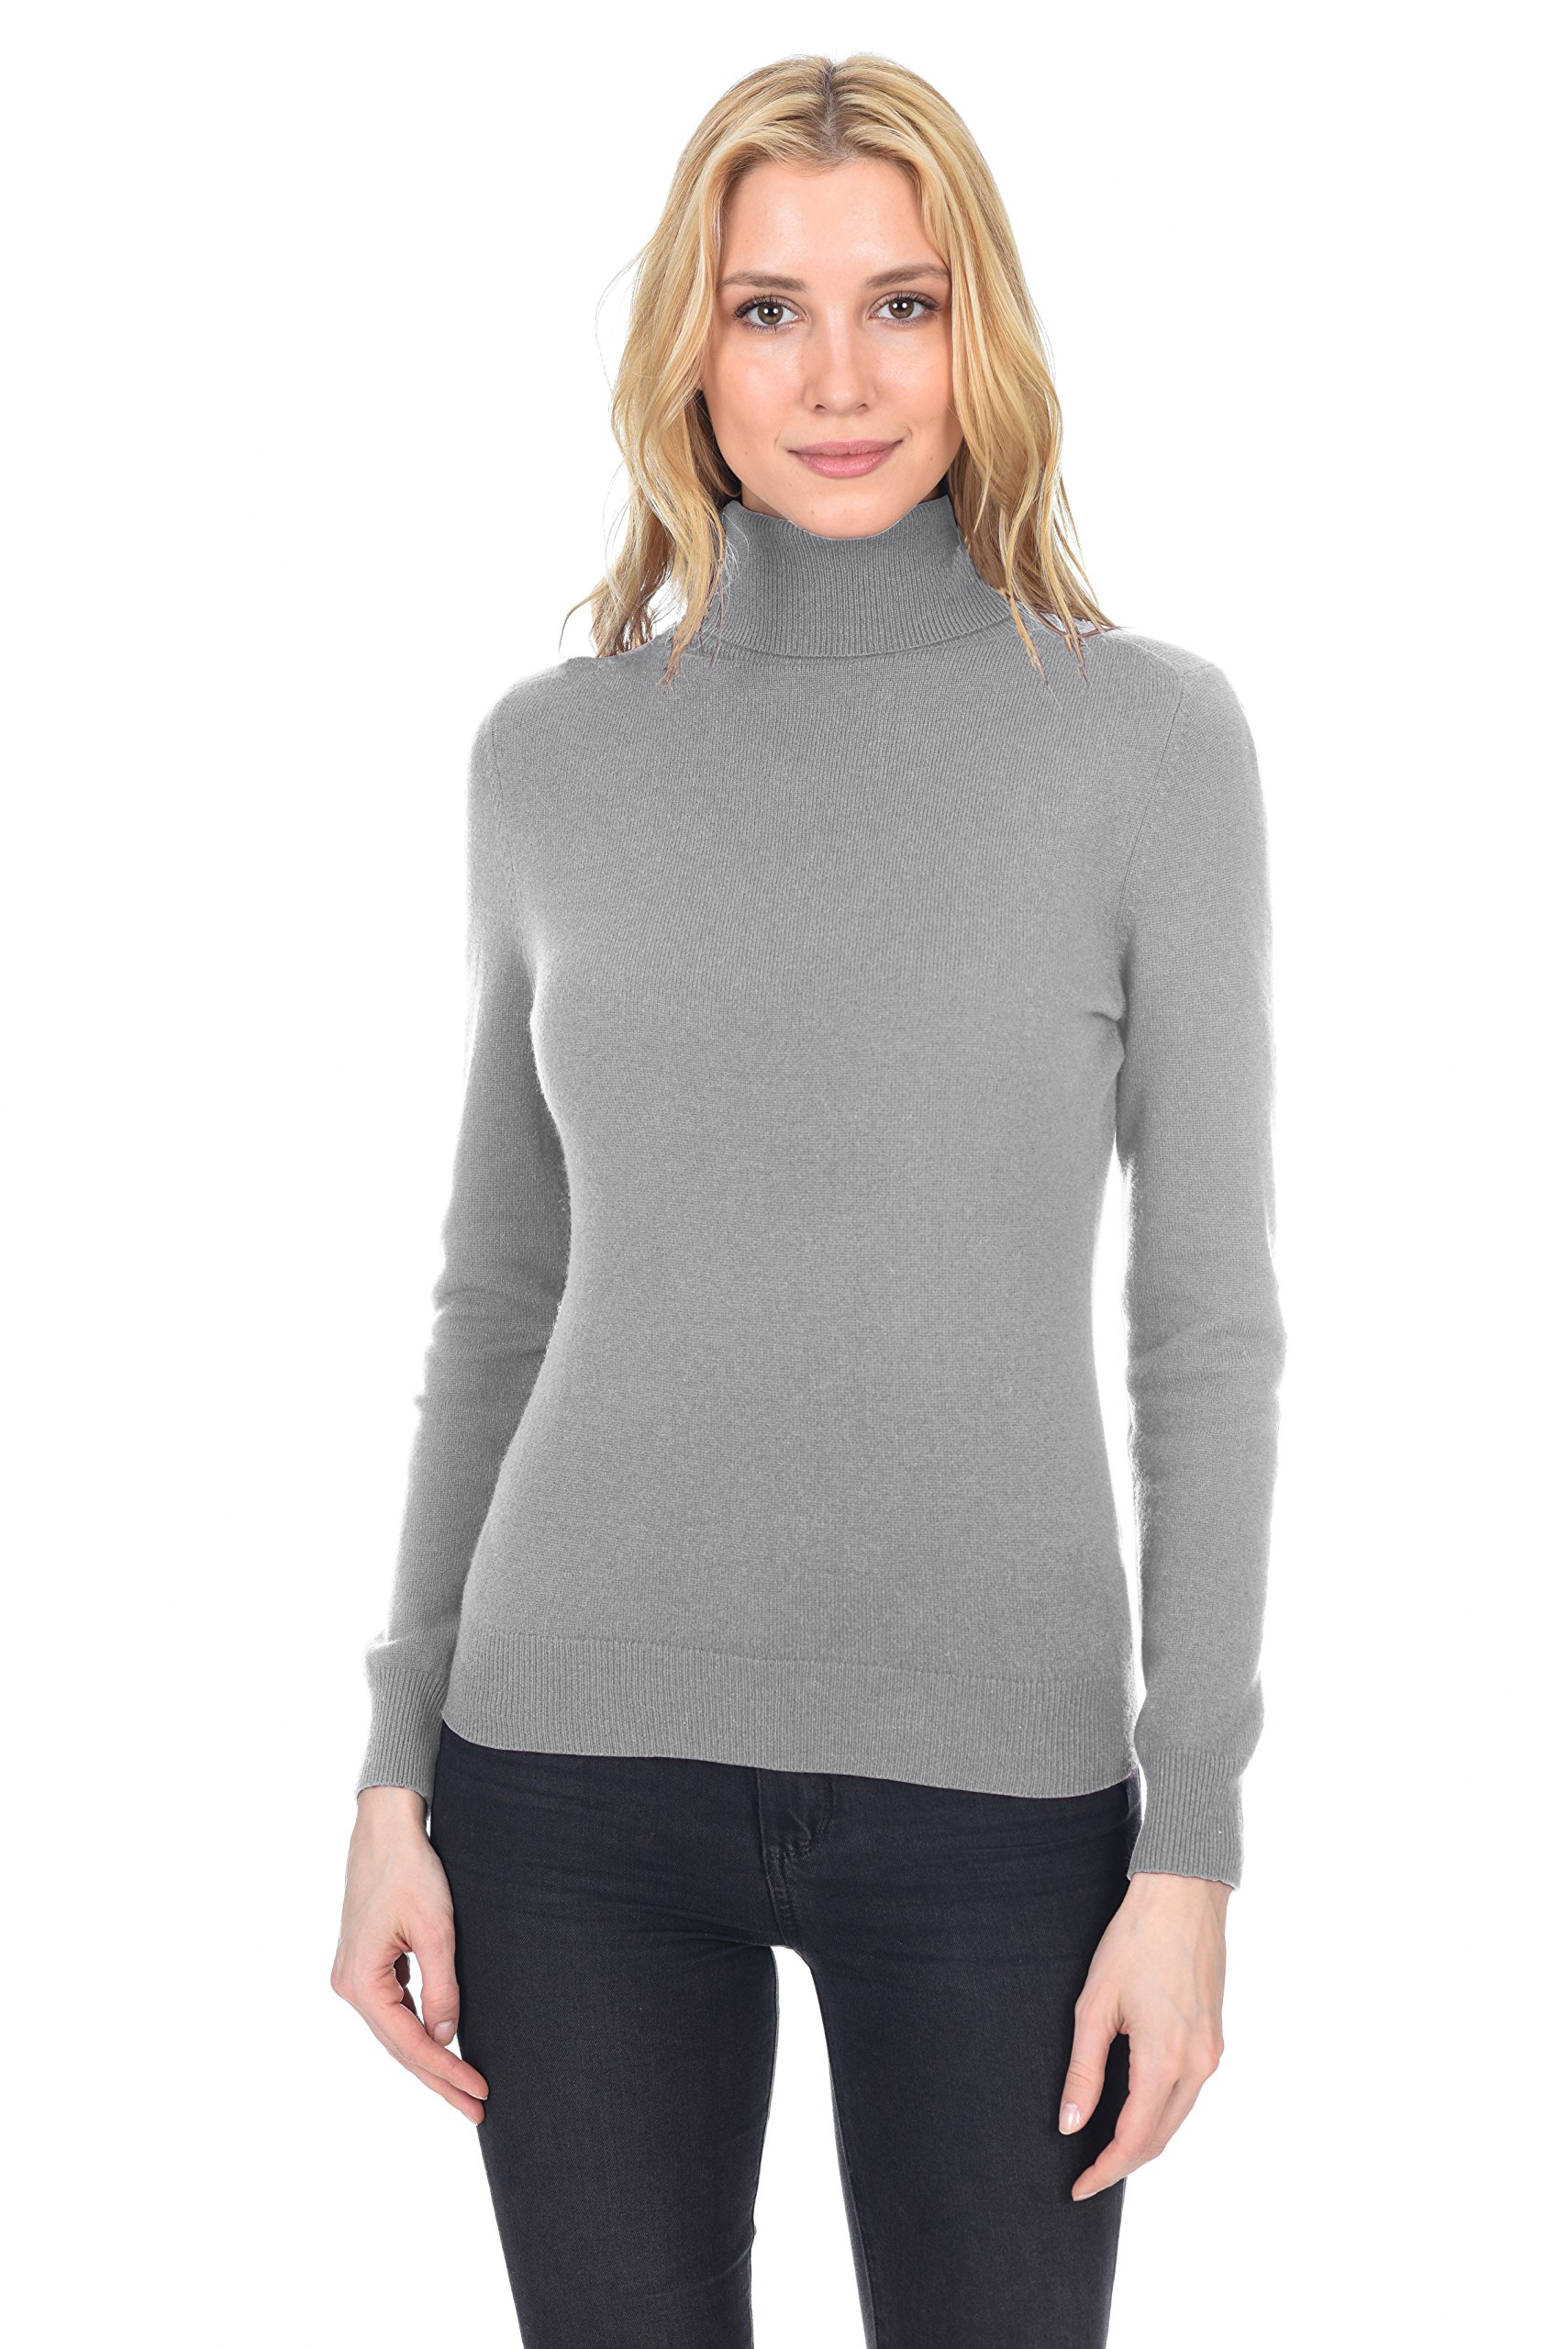 State Fusio Women's Cashmere Wool Long Sleeve Pullover Turtleneck Sweater Premium Quality Heather Grey